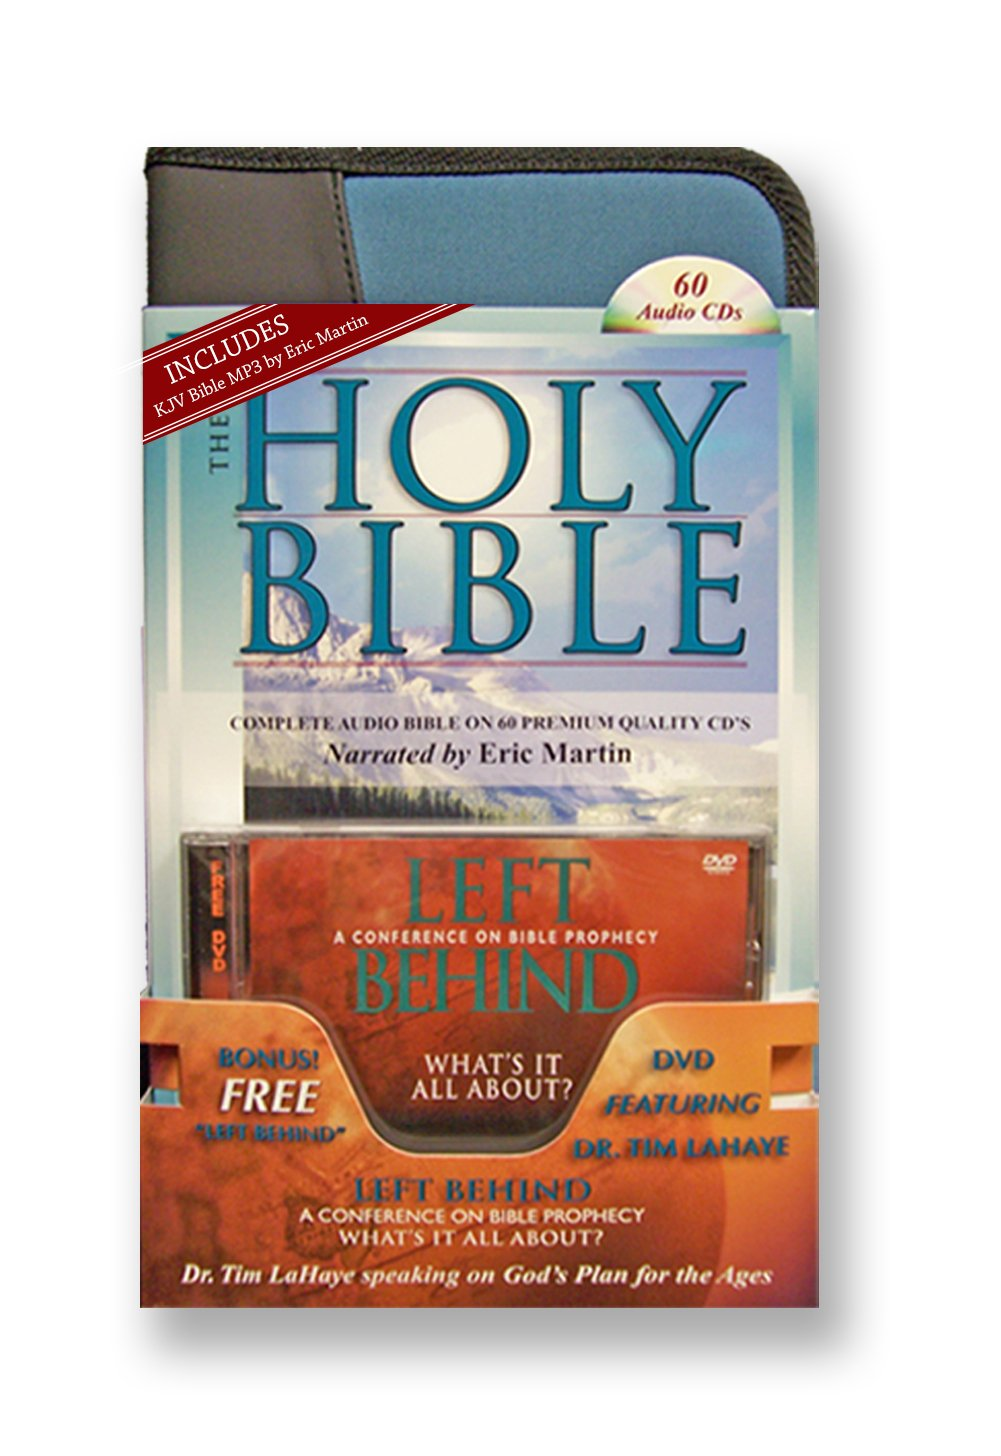 King james Version Audio Bible on 60 CDs-Plus Free Audio Bible, a 2nd Complete Audio Bible Free on MP3 Discs-Plus Free Tim LaHaye speaking on God's Plan for the Ages.